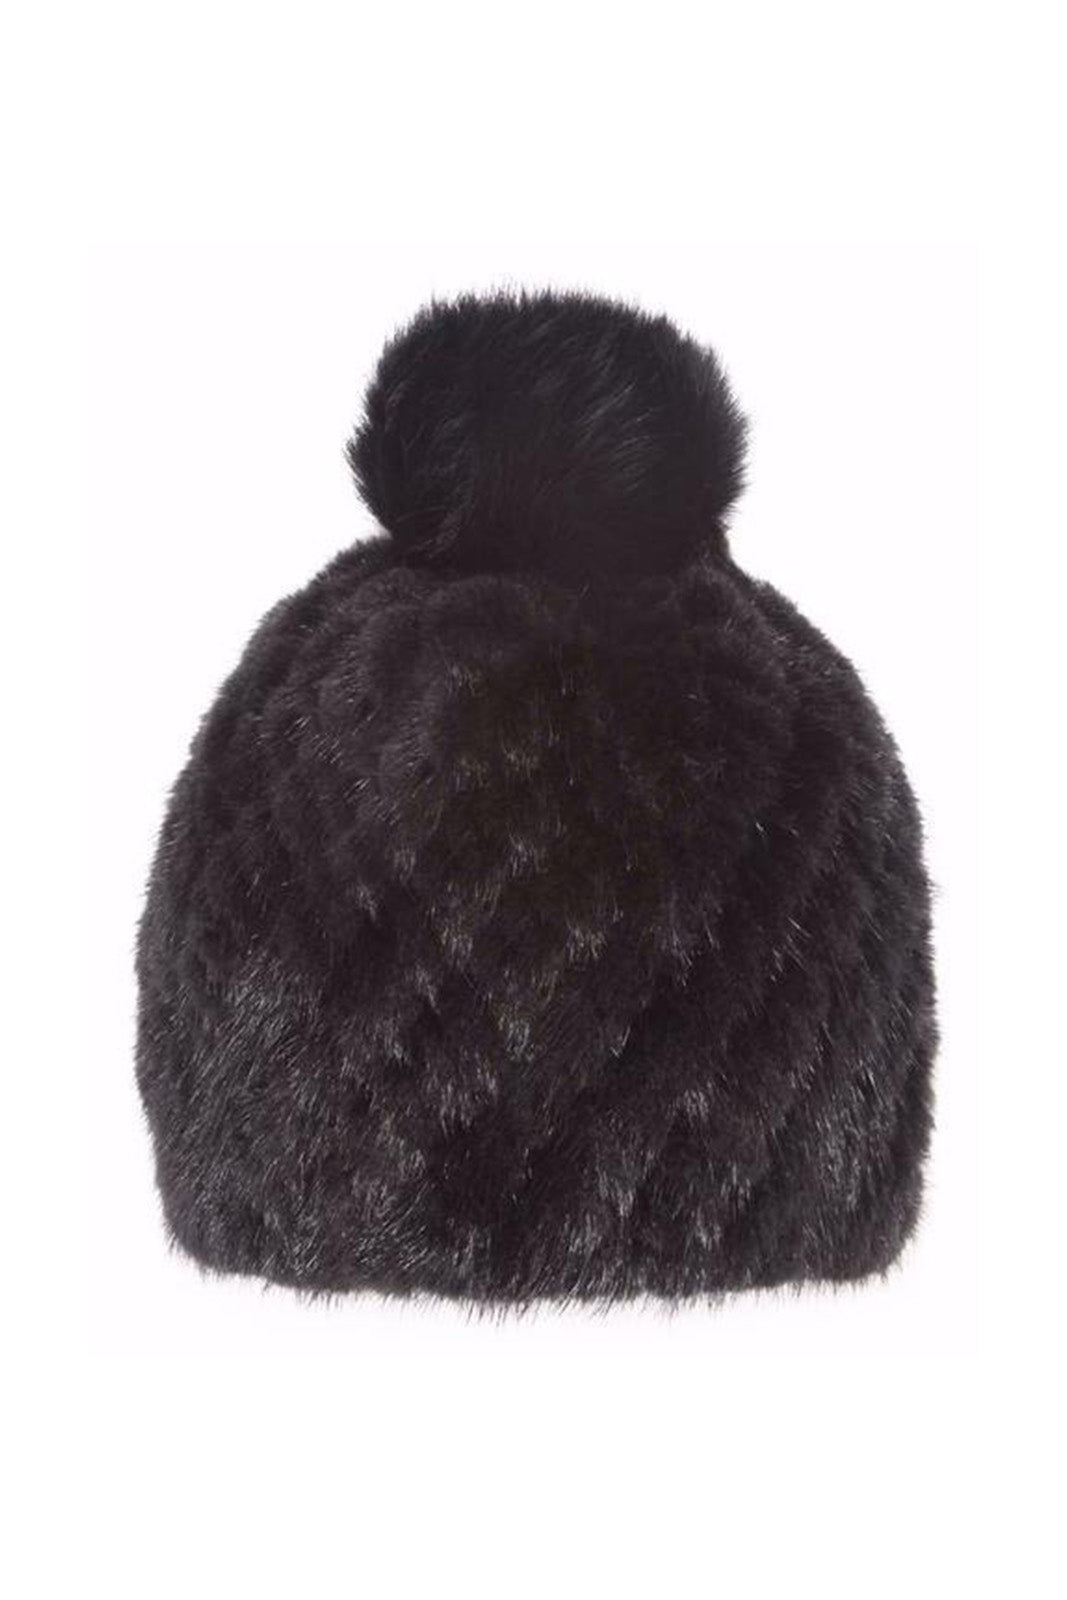 Rex Rabbit Hat W/ Fox PomPom, Black